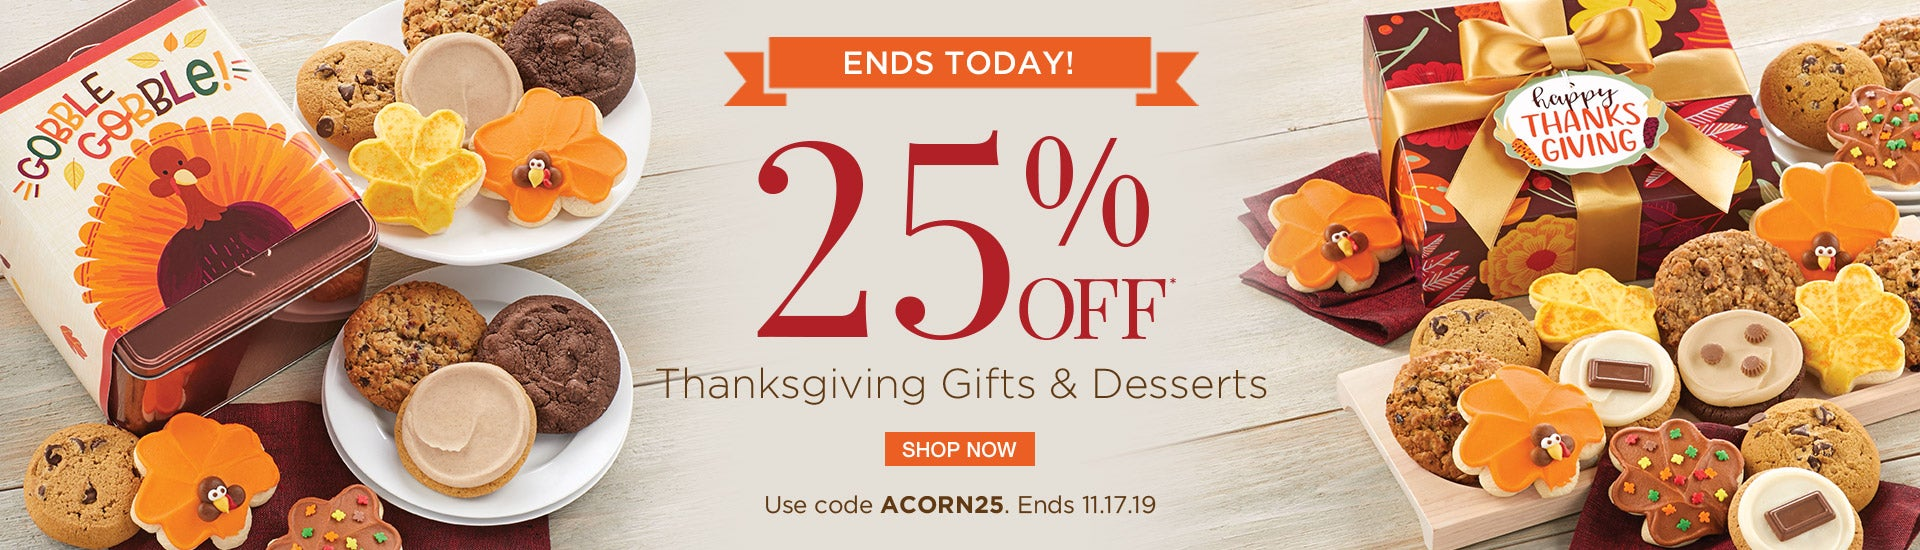 25% off Thanksgiving Gifts